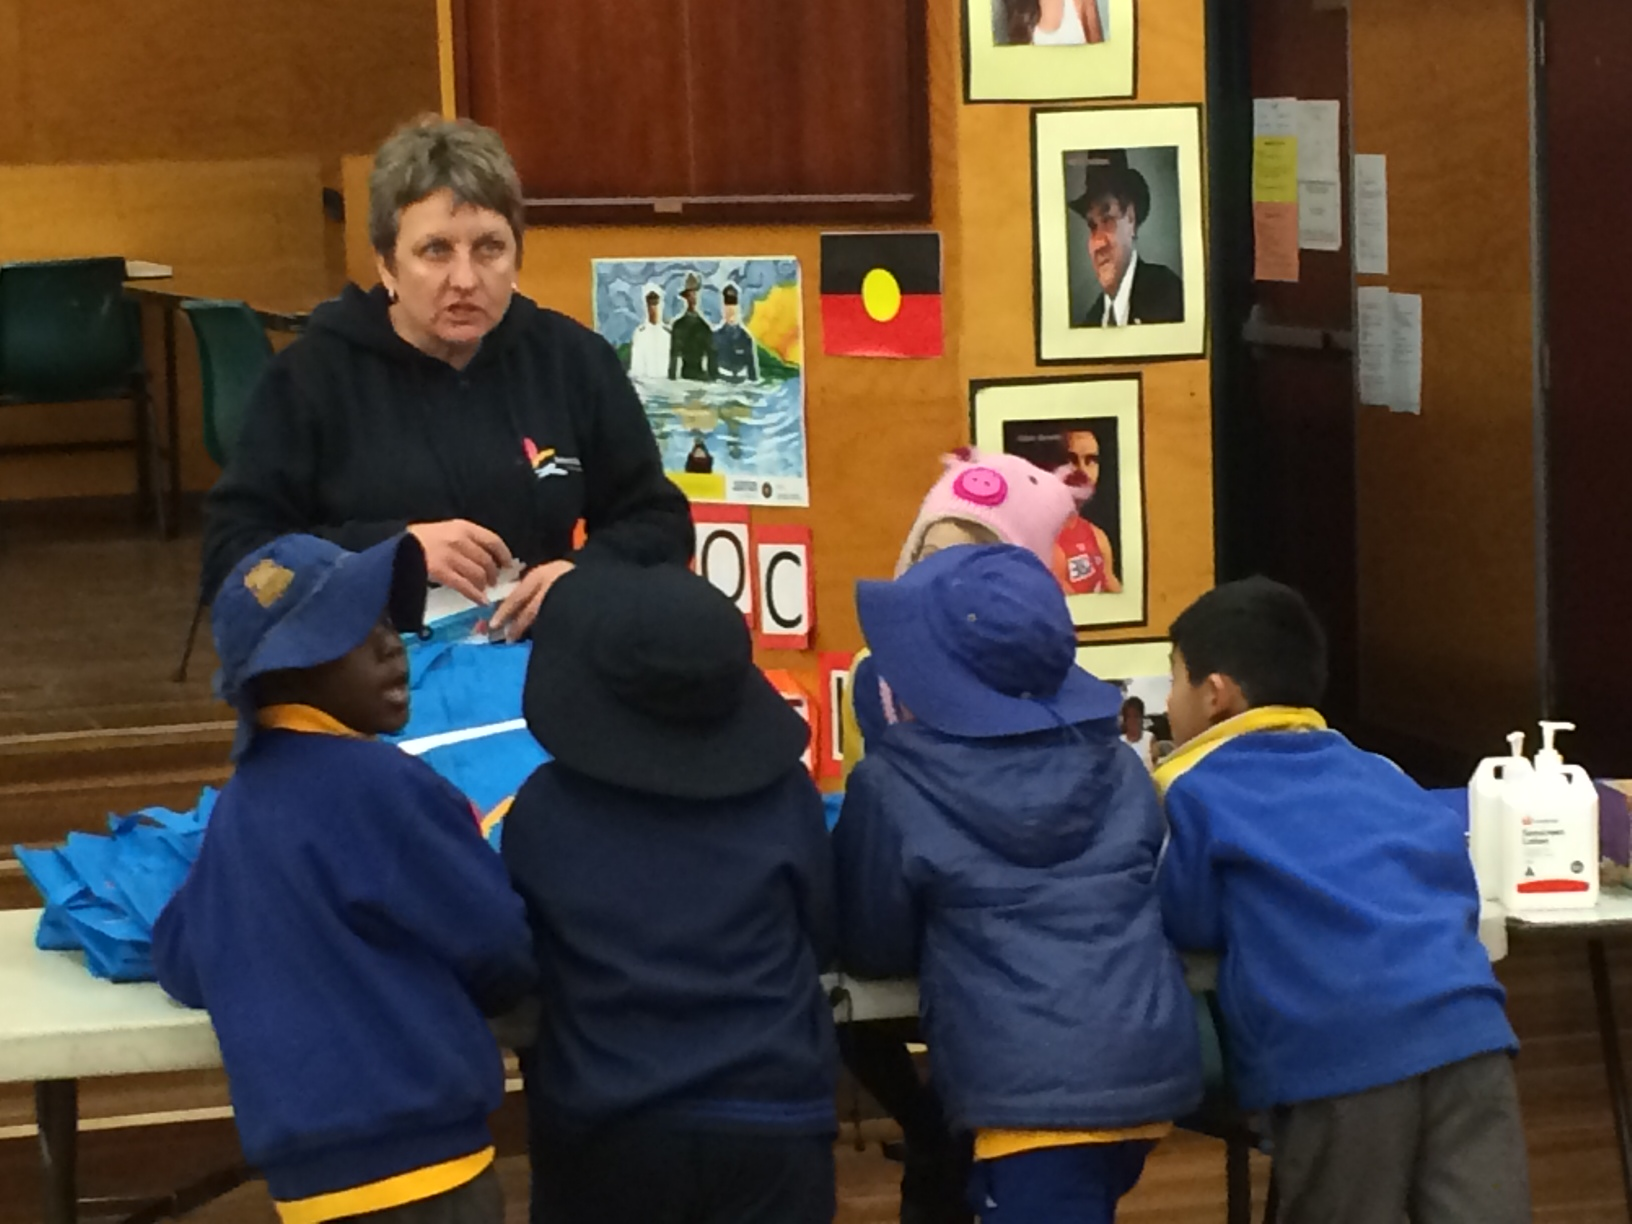 Answering the tough questions in life at Kogarah Community Services after school program!